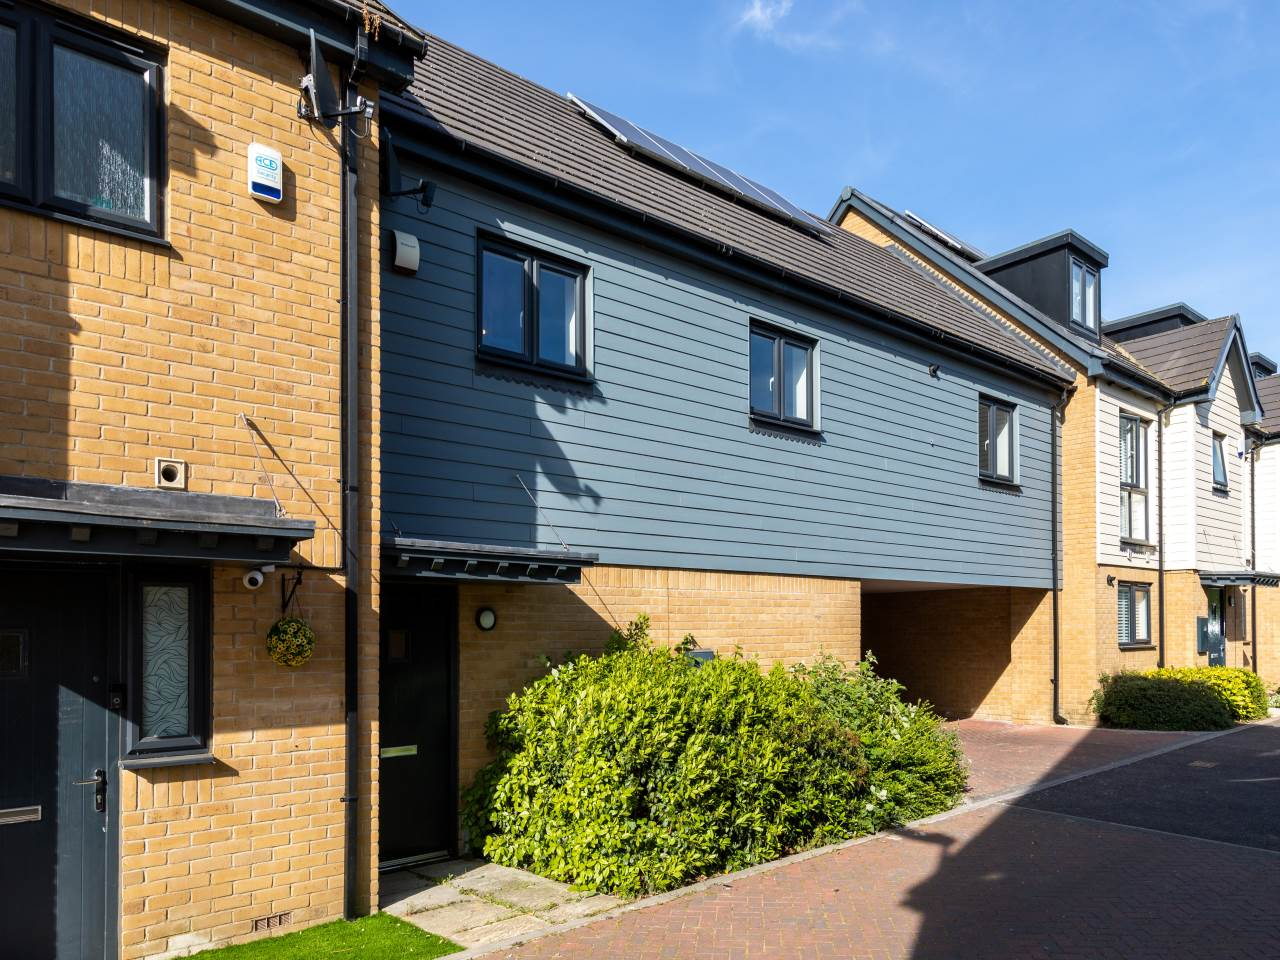 2 bed flat to rent in Woodford Green 0